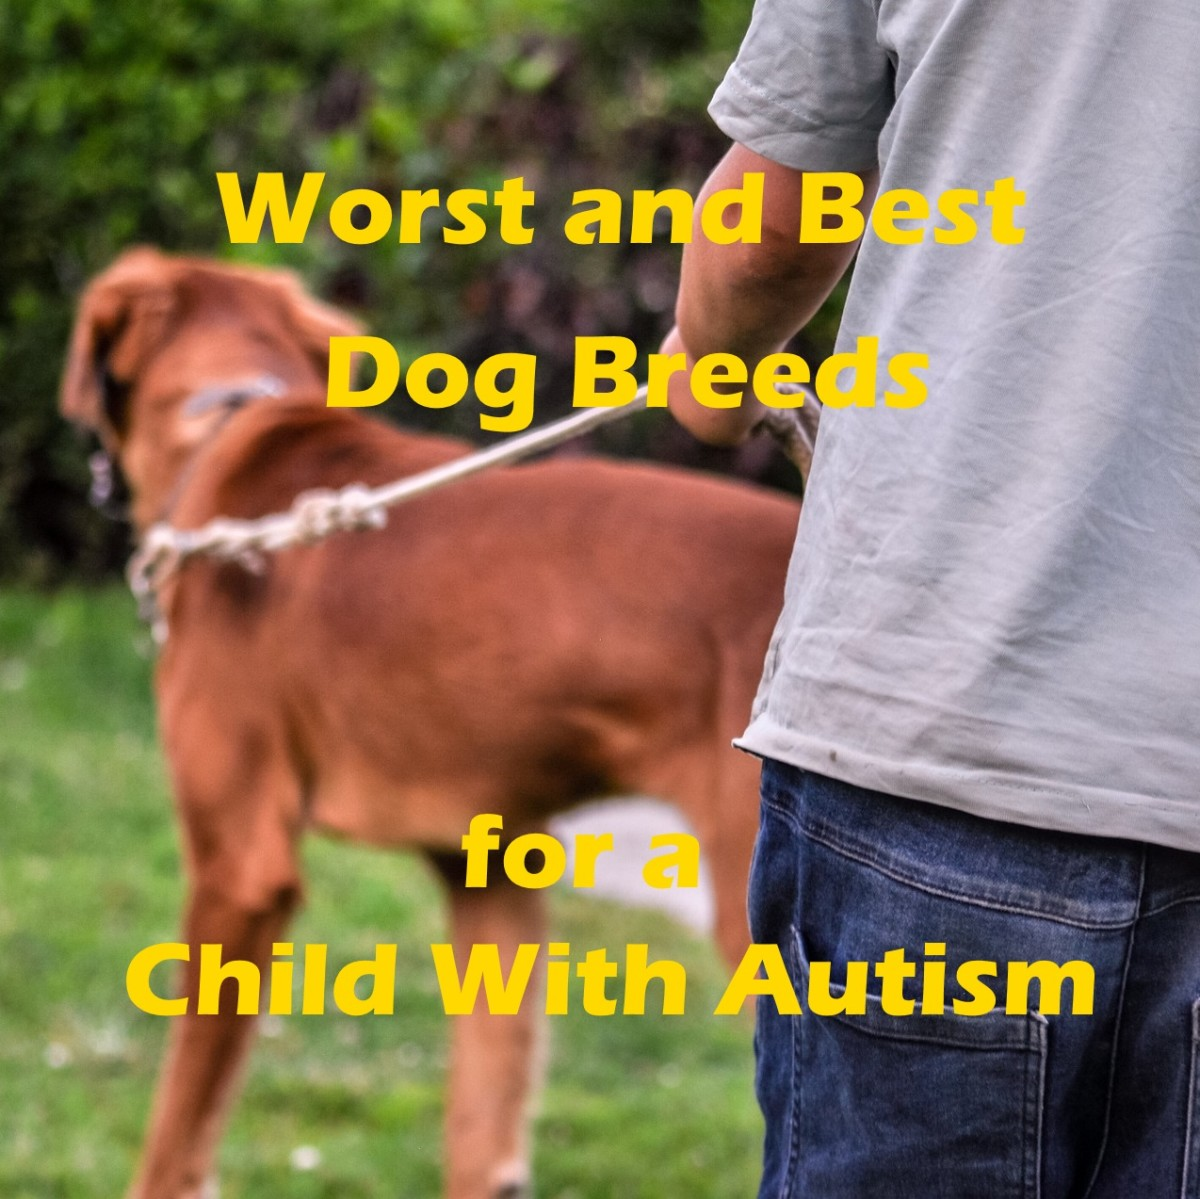 Best and worst dog breeds for a child with autism.